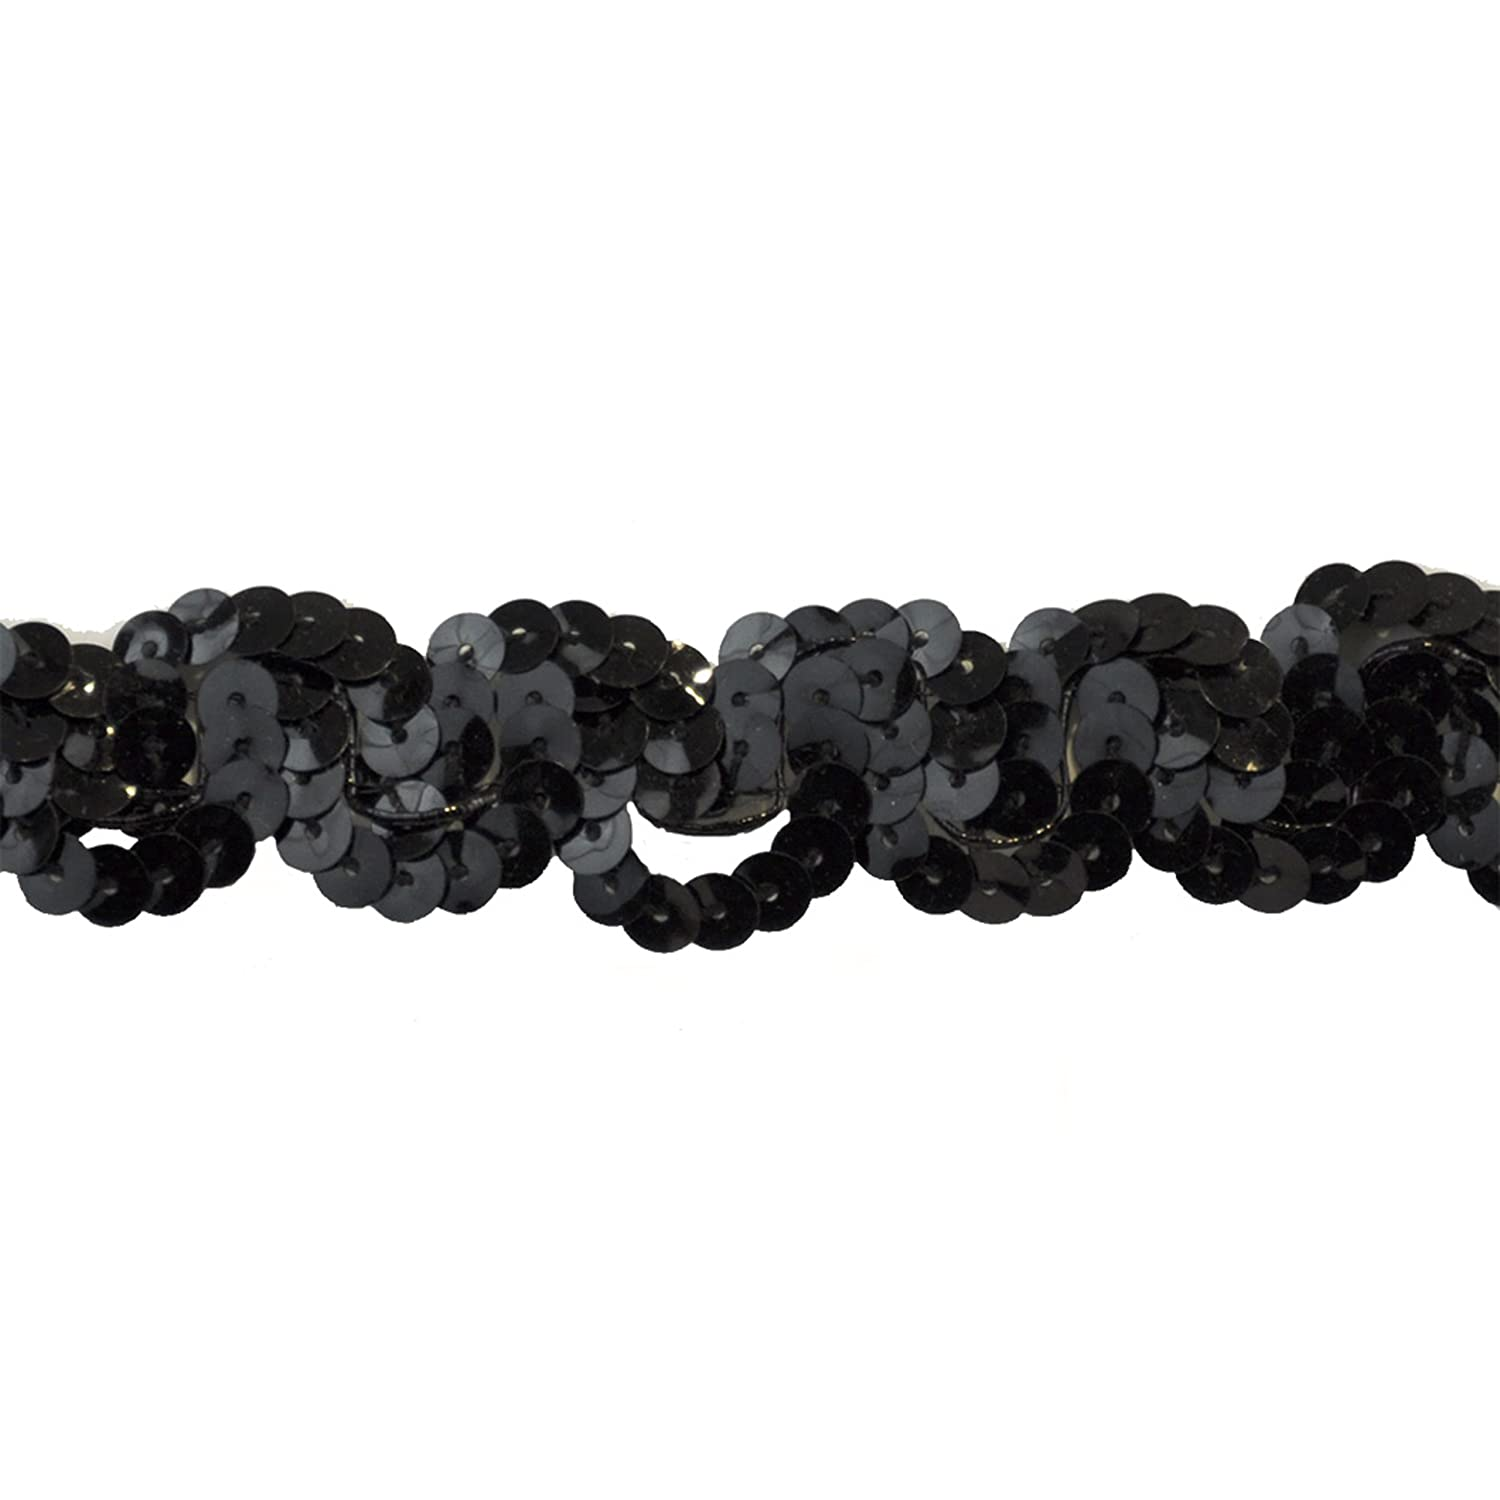 Sequin Trim 1-Inch Wide Polyester Non Stretch Rolls for Arts and Crafts, 10-Yard, Black Belagio Enterprises BQ-301 - 02 BLACK